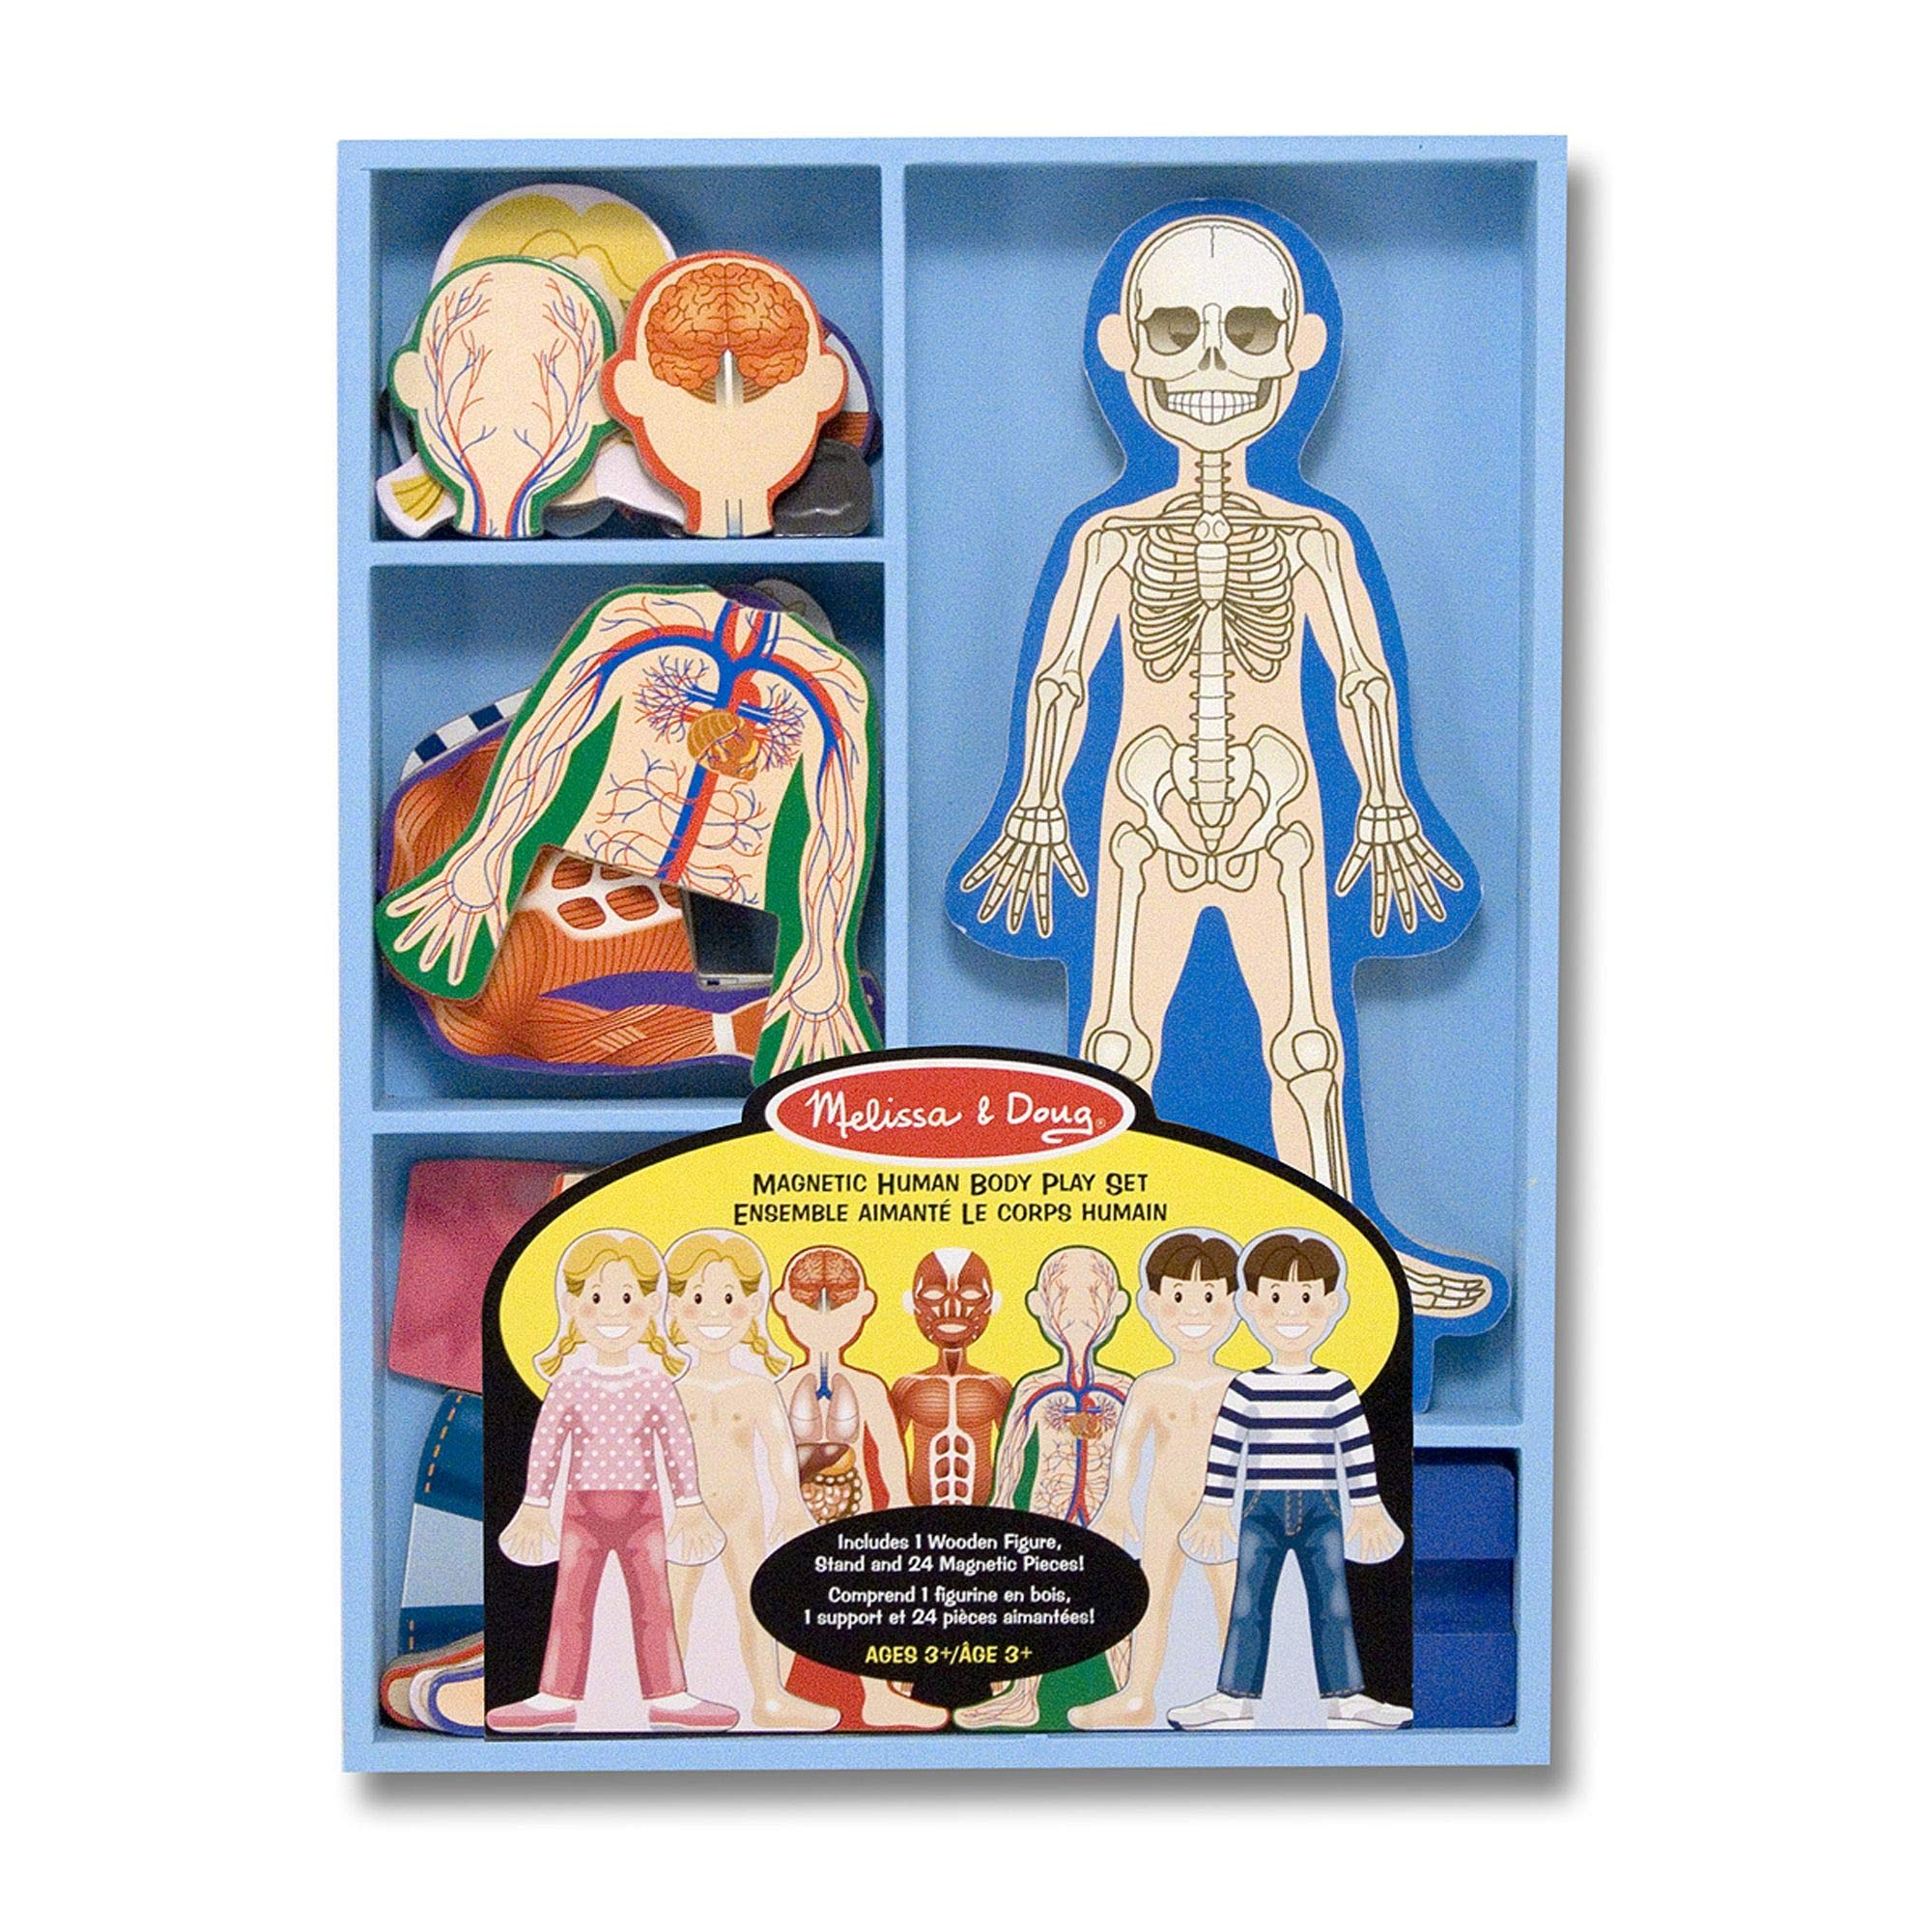 Melissa & Doug Magnetic Human Body Anatomy Play Set (Anatomically Correct Boy and Girl Magnets, 24 Magnetic Pieces and Storage Tray, Great Gift for Girls and Boys - Best for 3, 4, 5 Year Olds and Up) by Melissa & Doug